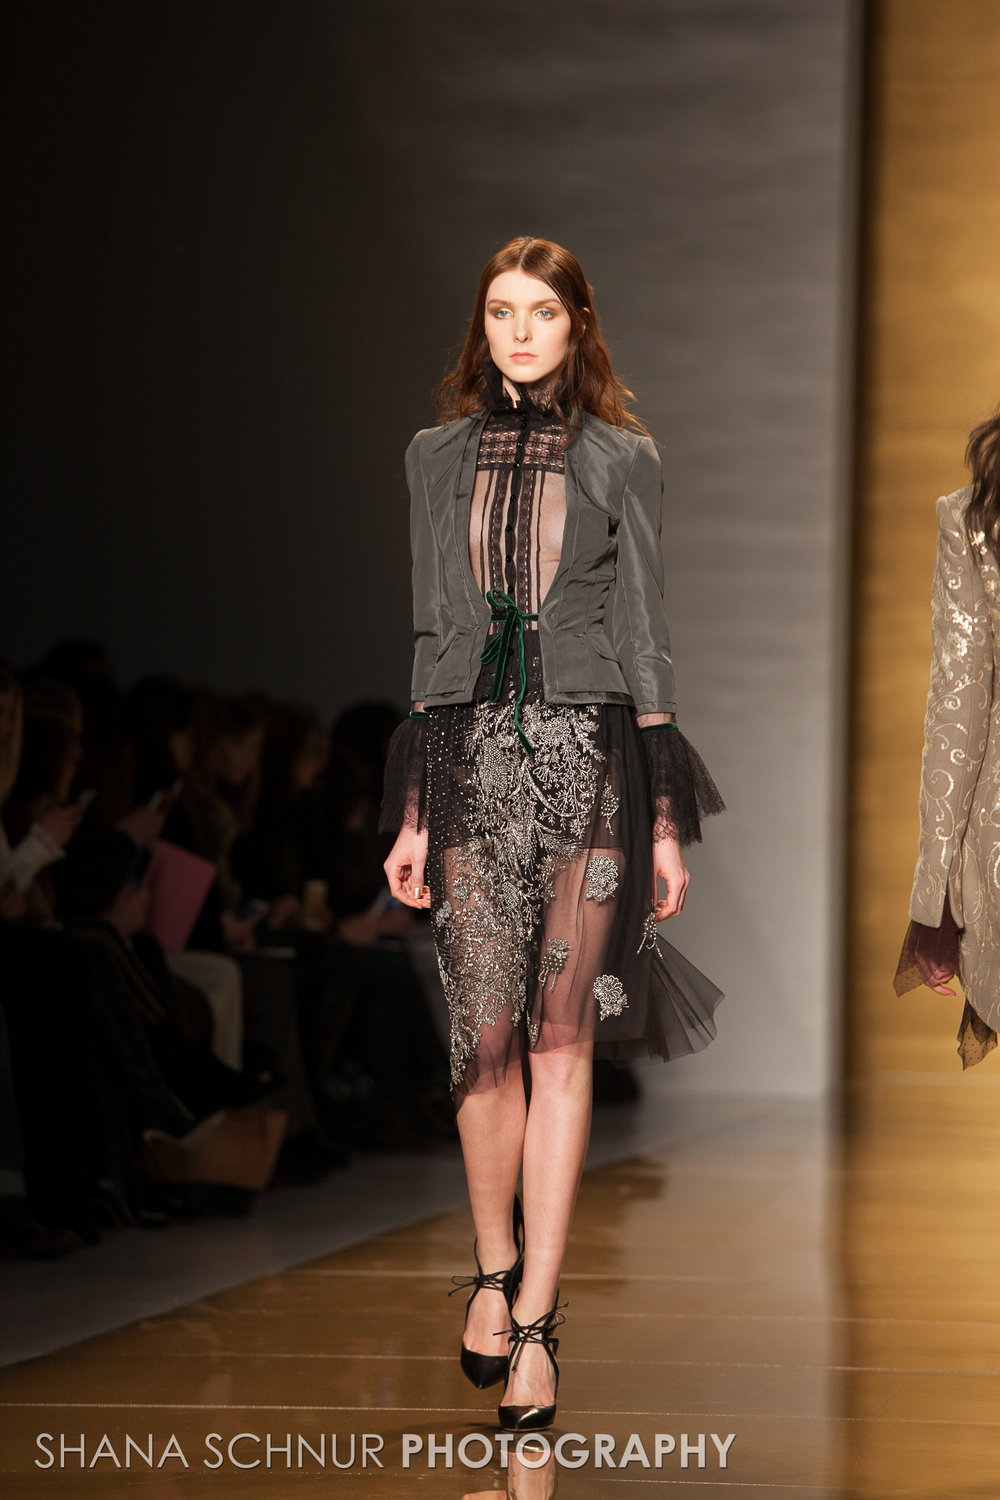 Reem-Acra-New-York-Fashion-Week-Fall-Winter-2015-Shana-Schnur-Photography-IMG_9511-017.jpg